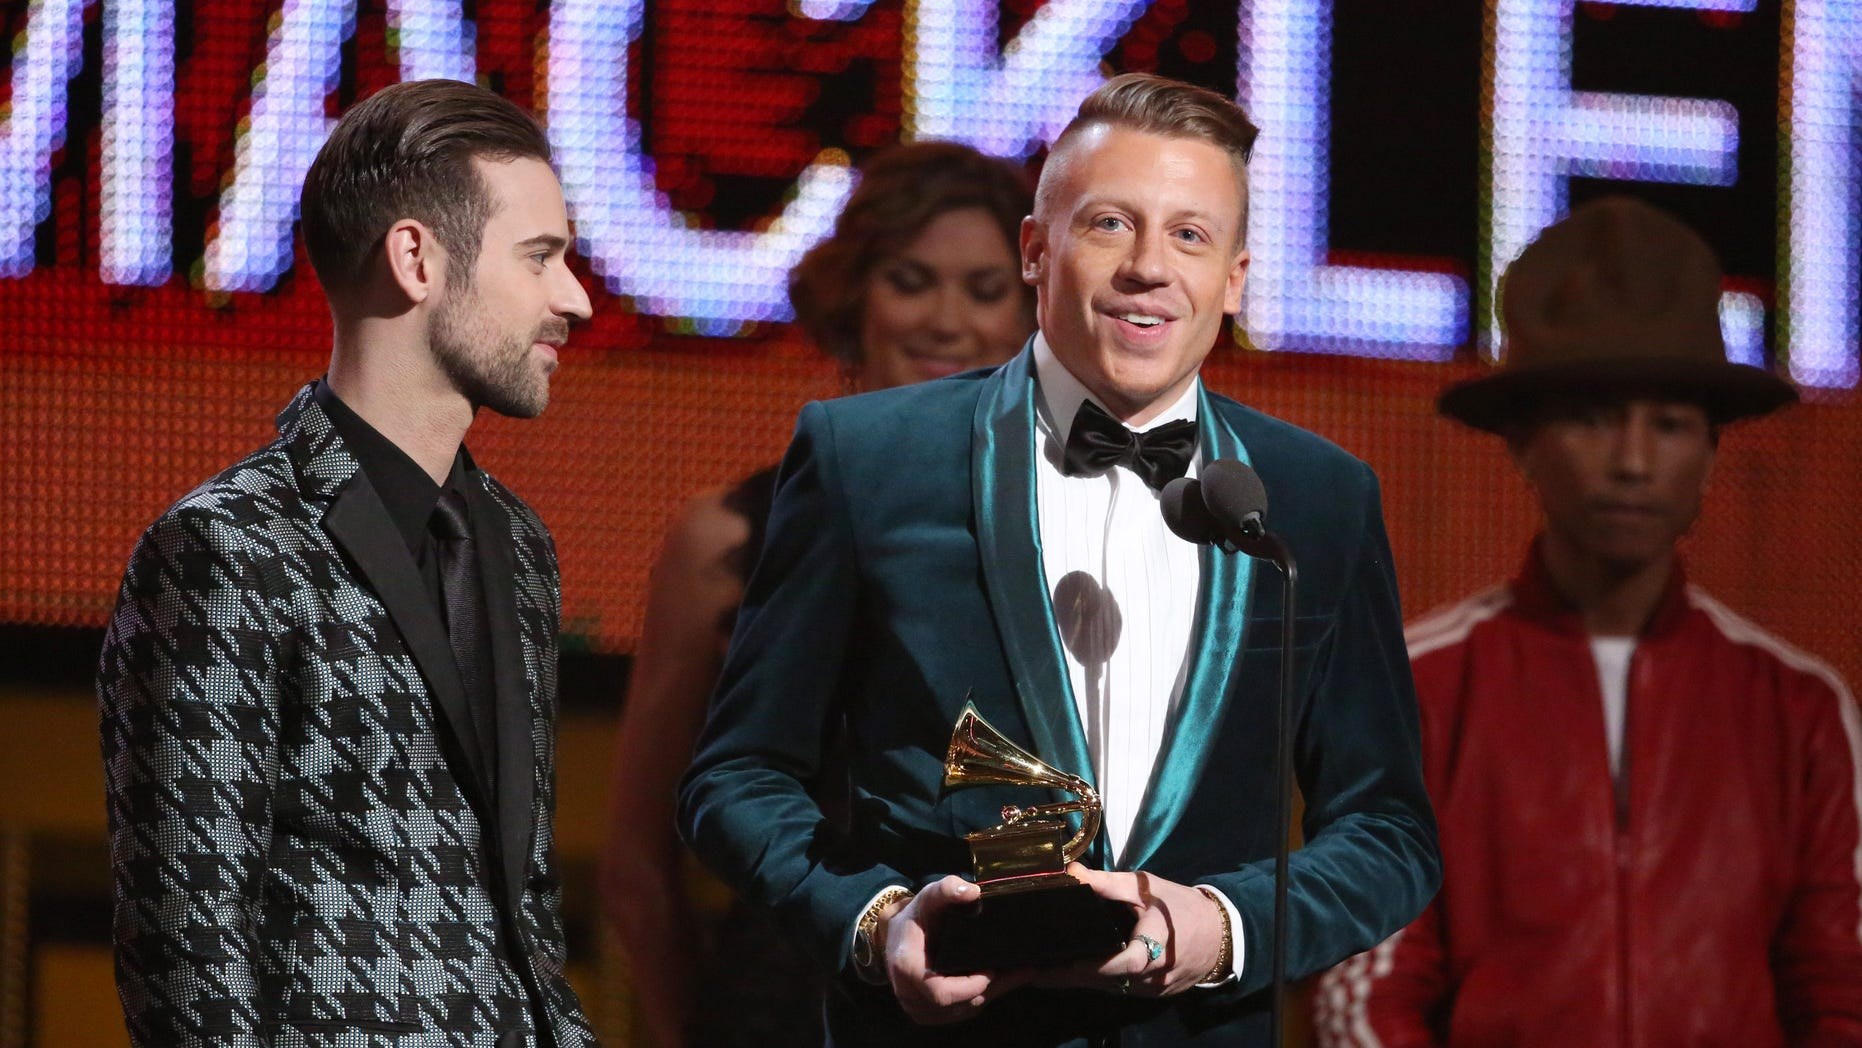 Ryan Lewis, left, and Macklemore accept the award for best new artist at the 56th annual Grammy Awards at Staples Center on Sunday, Jan. 26, 2014, in Los Angeles. (Photo by Matt Sayles/Invision/AP)